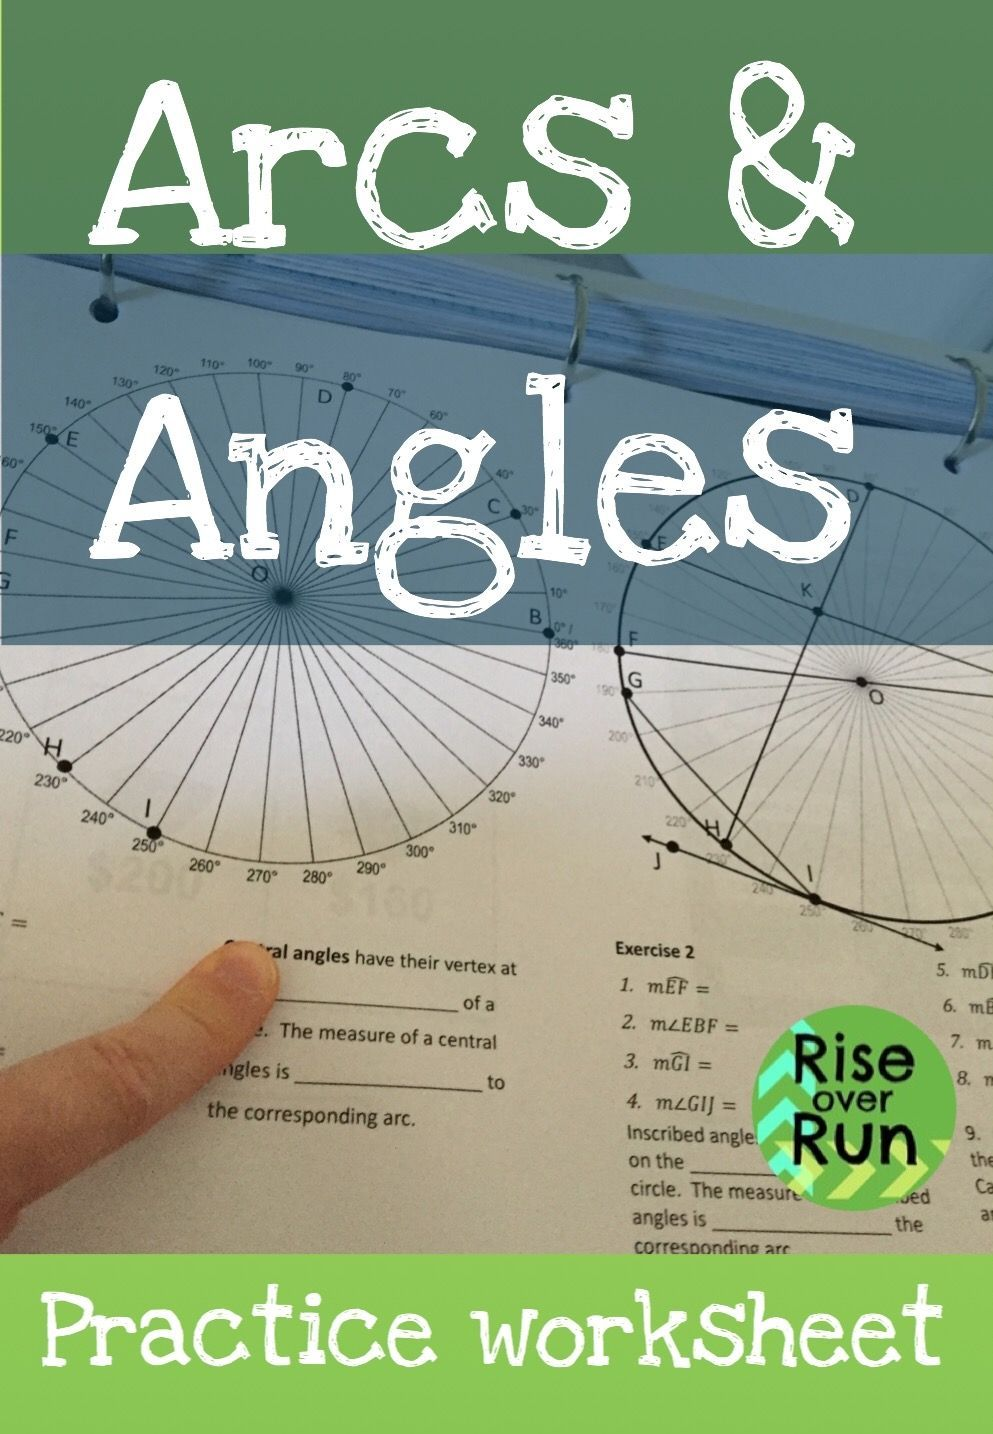 Arcs and angles in circles worksheet. Great way to explore ...